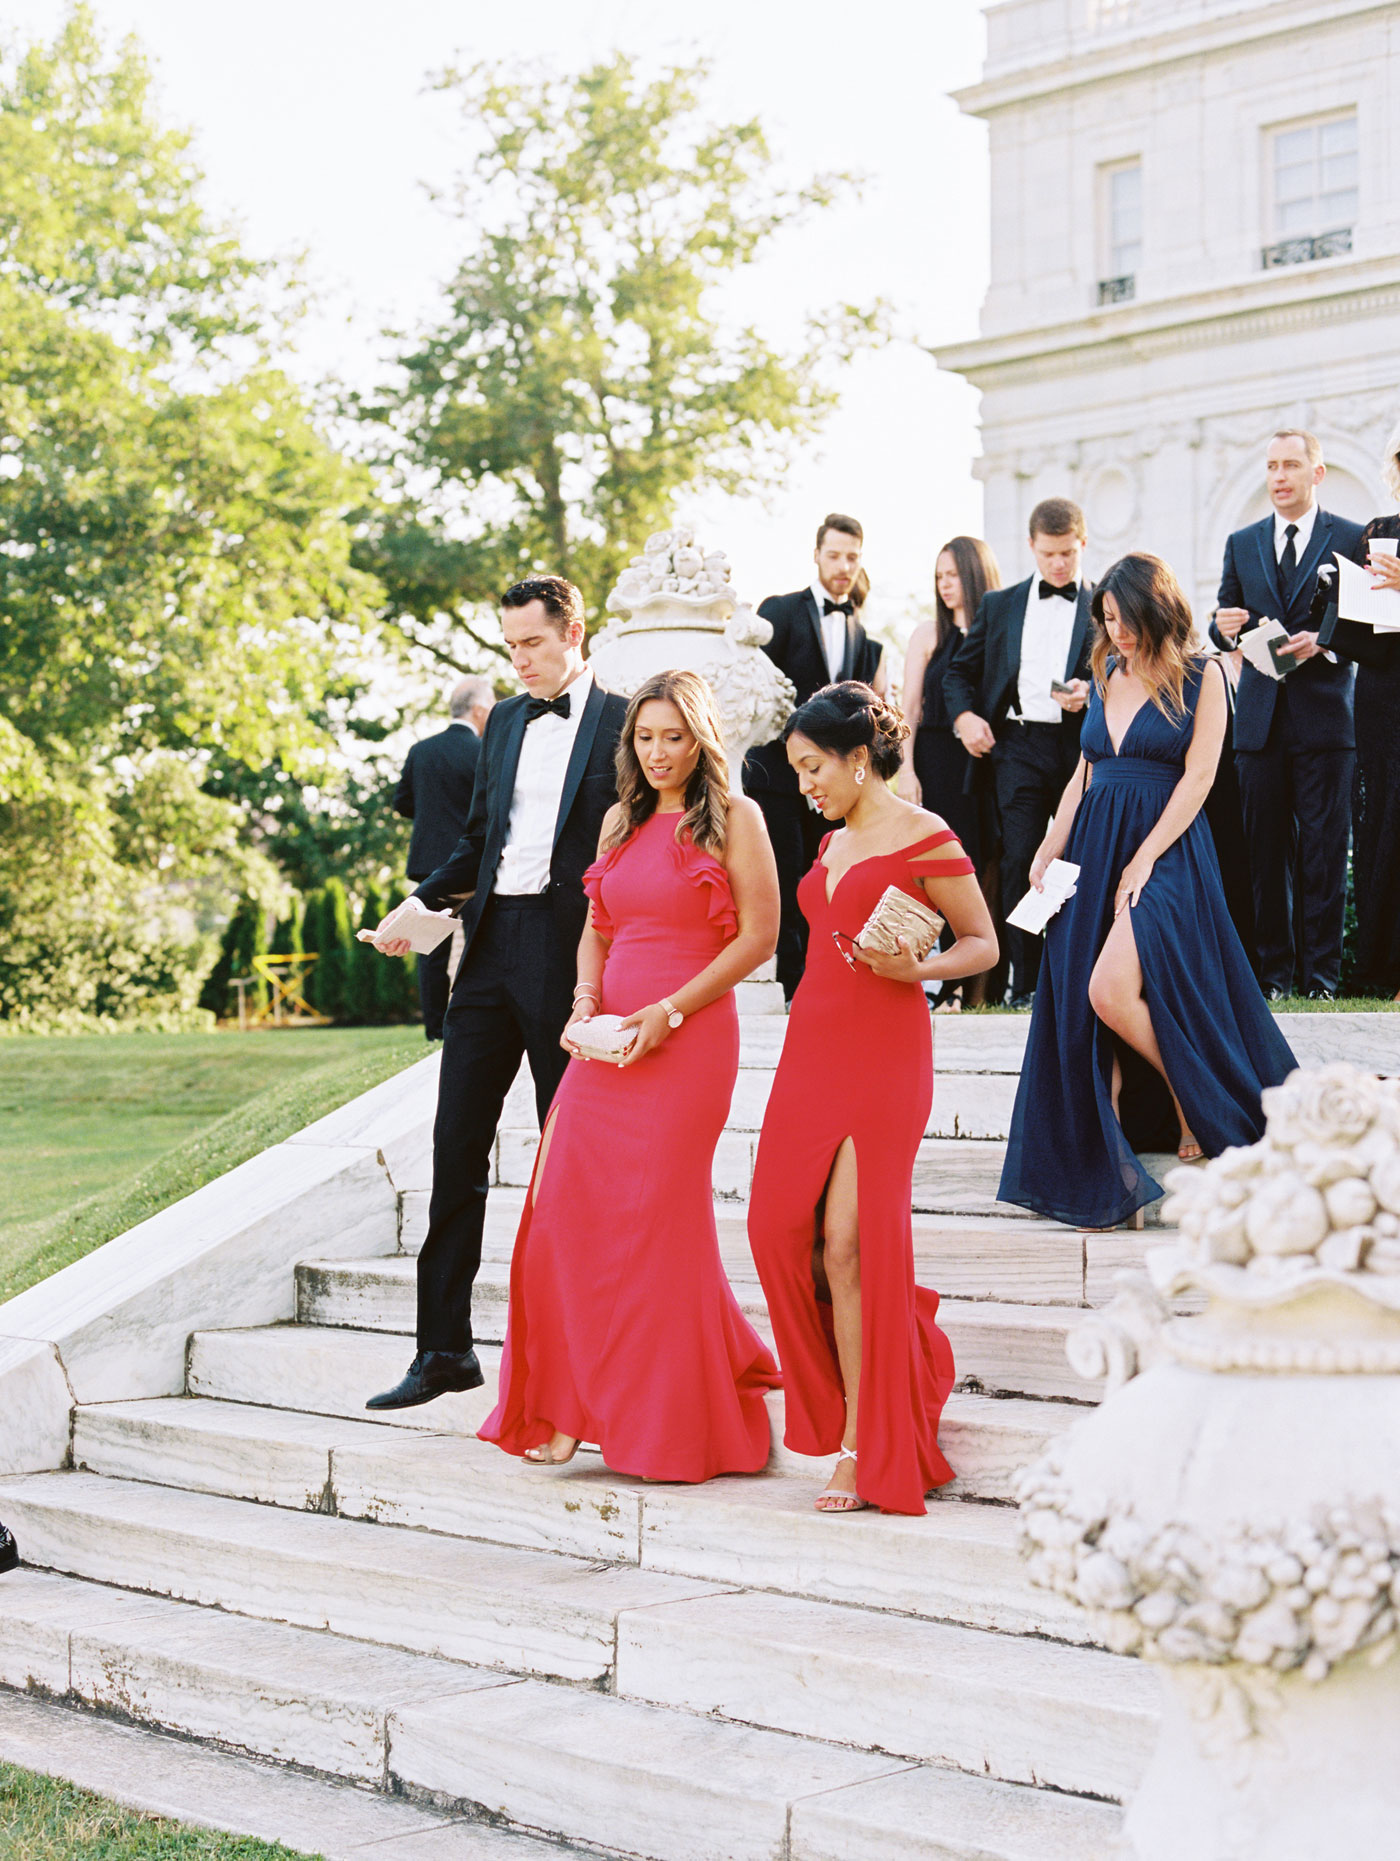 stylish guests at rosecliff wedding